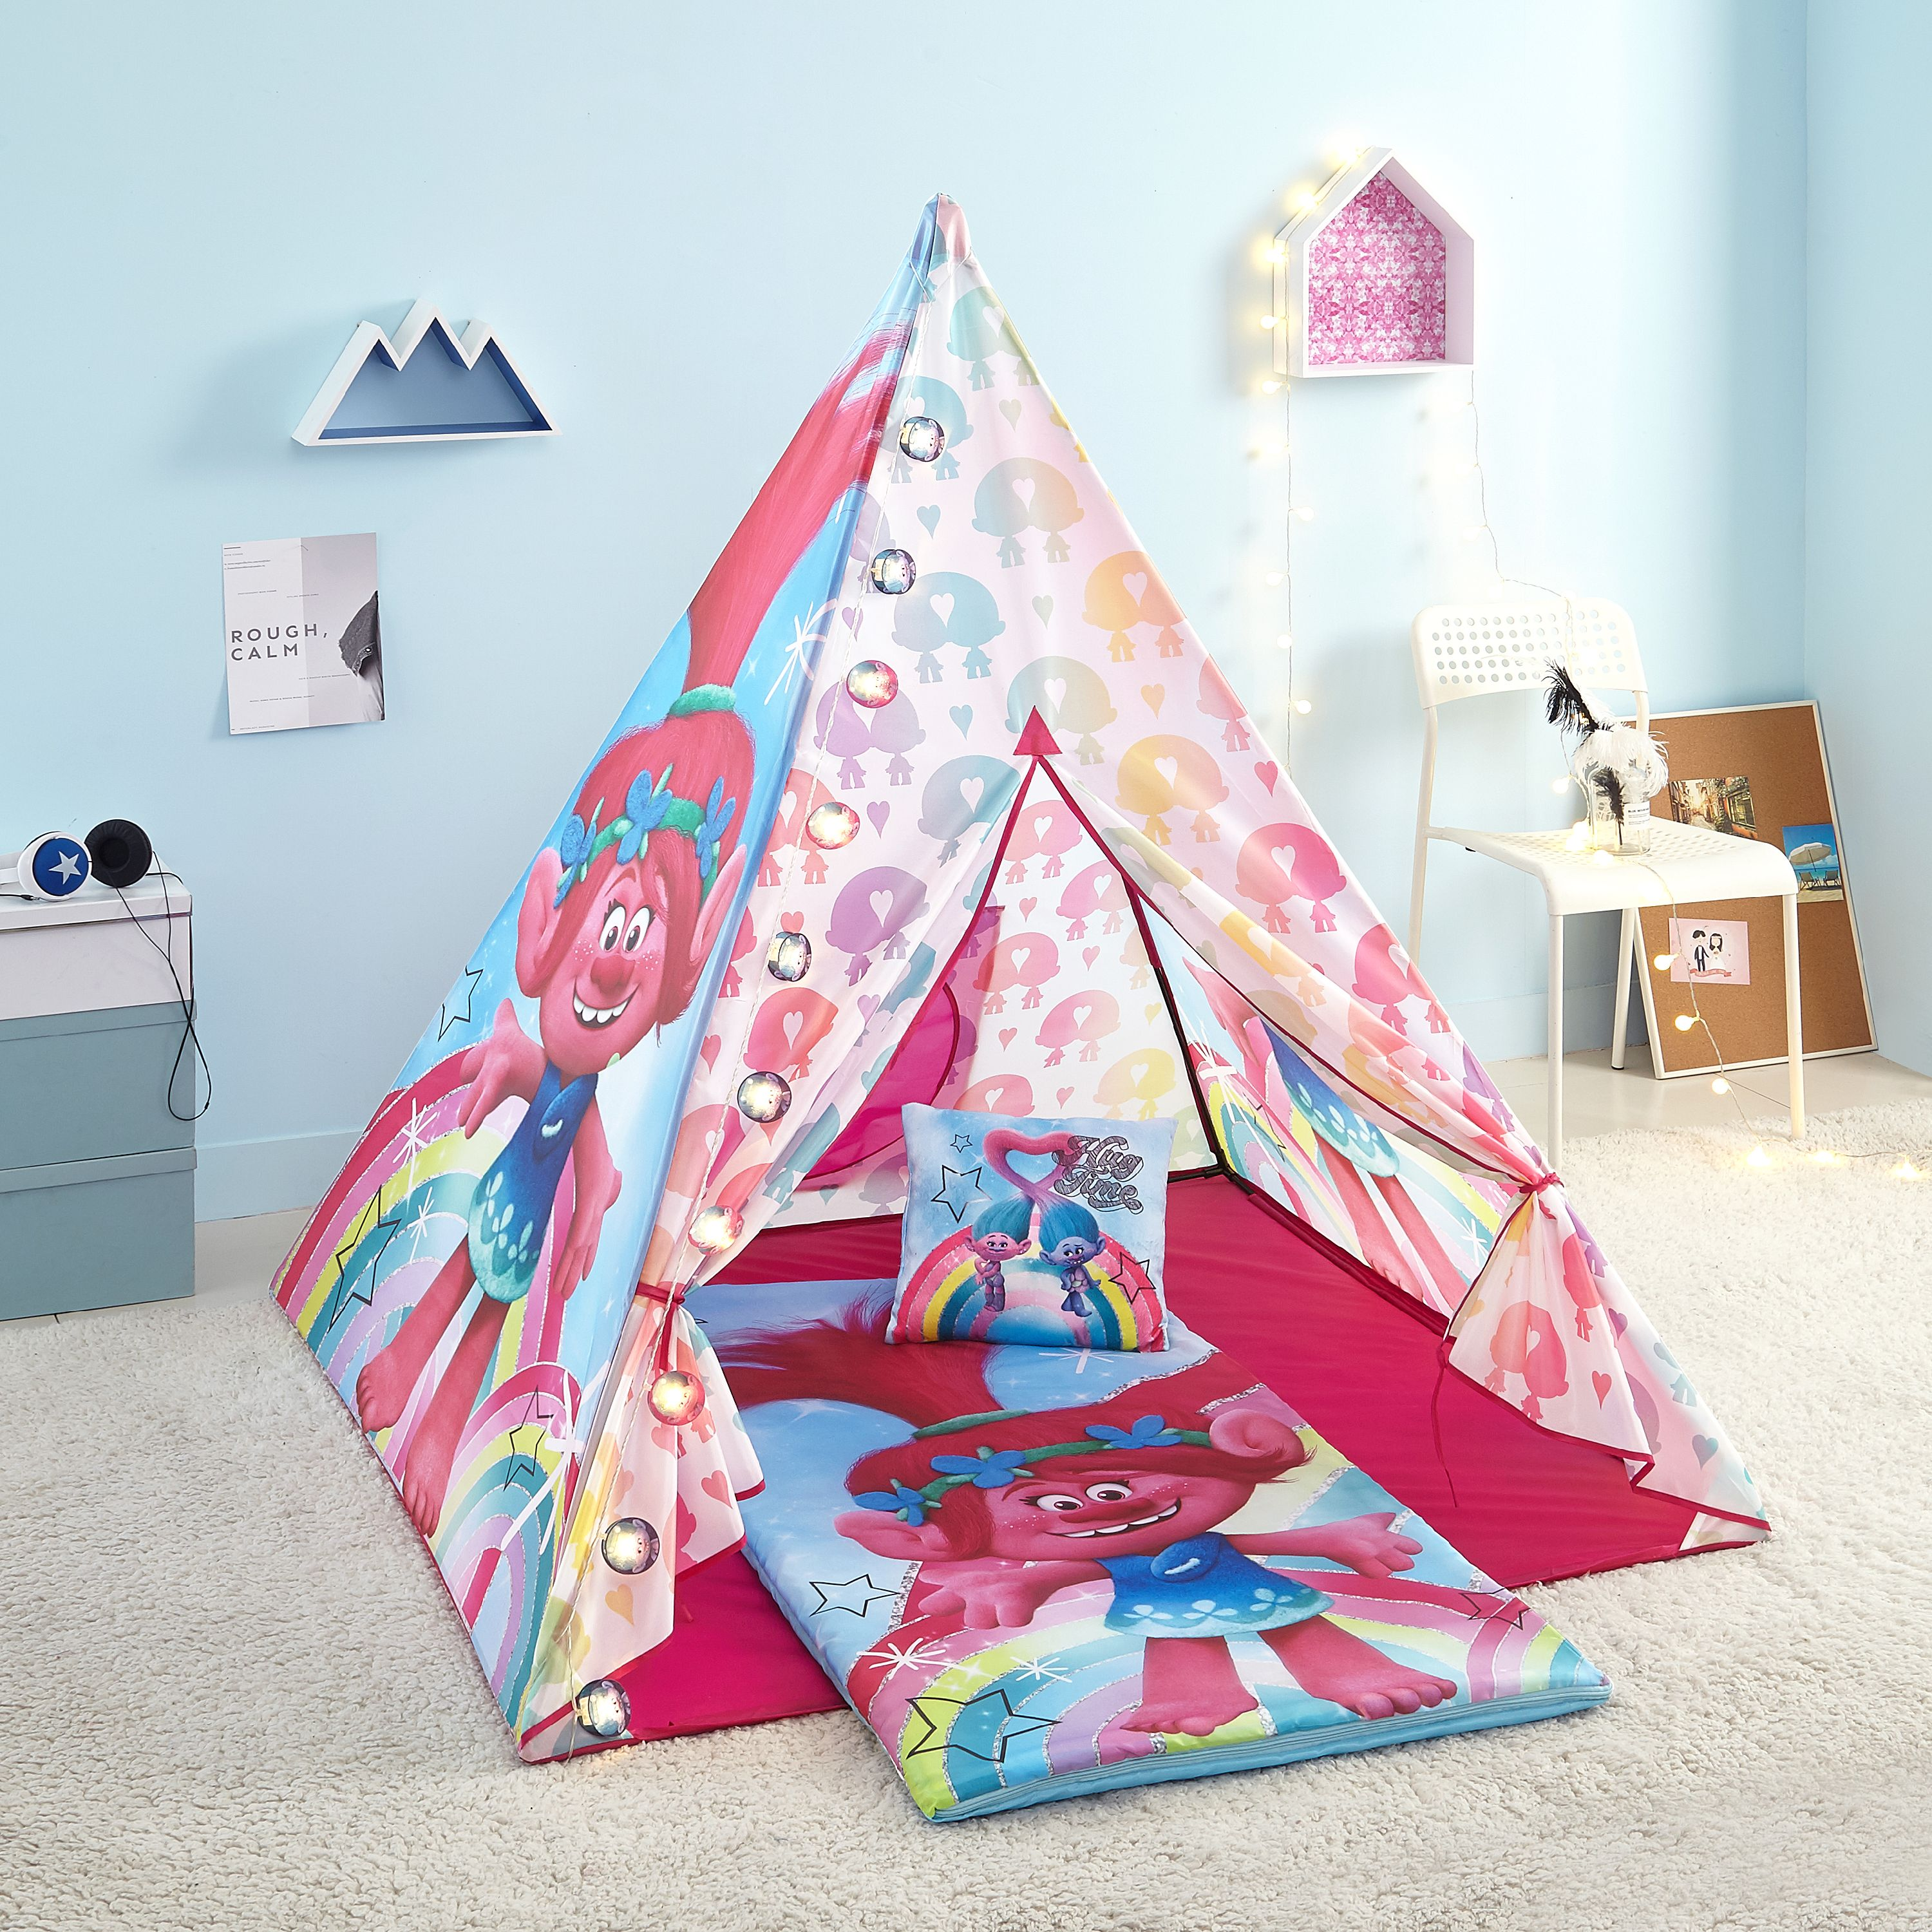 Trolls Girls Teepee Tent Set Includes Trolls Lights, Trolls Slumber Bag and Trolls Pillow by Idea Nuova